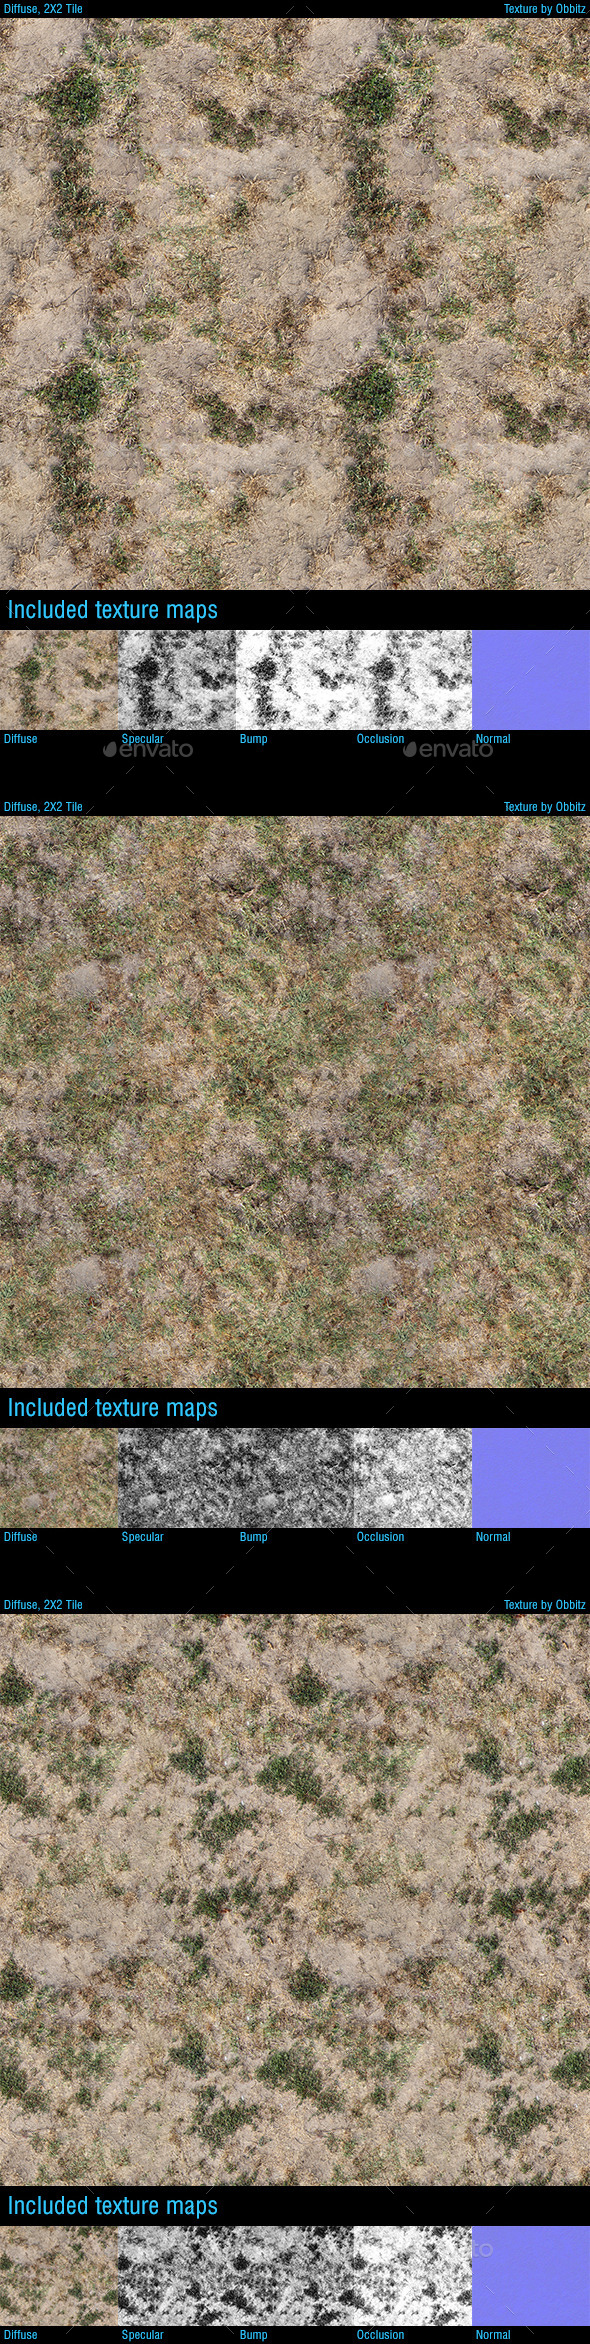 Dried Grass Ground - Pack of 3 Textures - 3DOcean Item for Sale